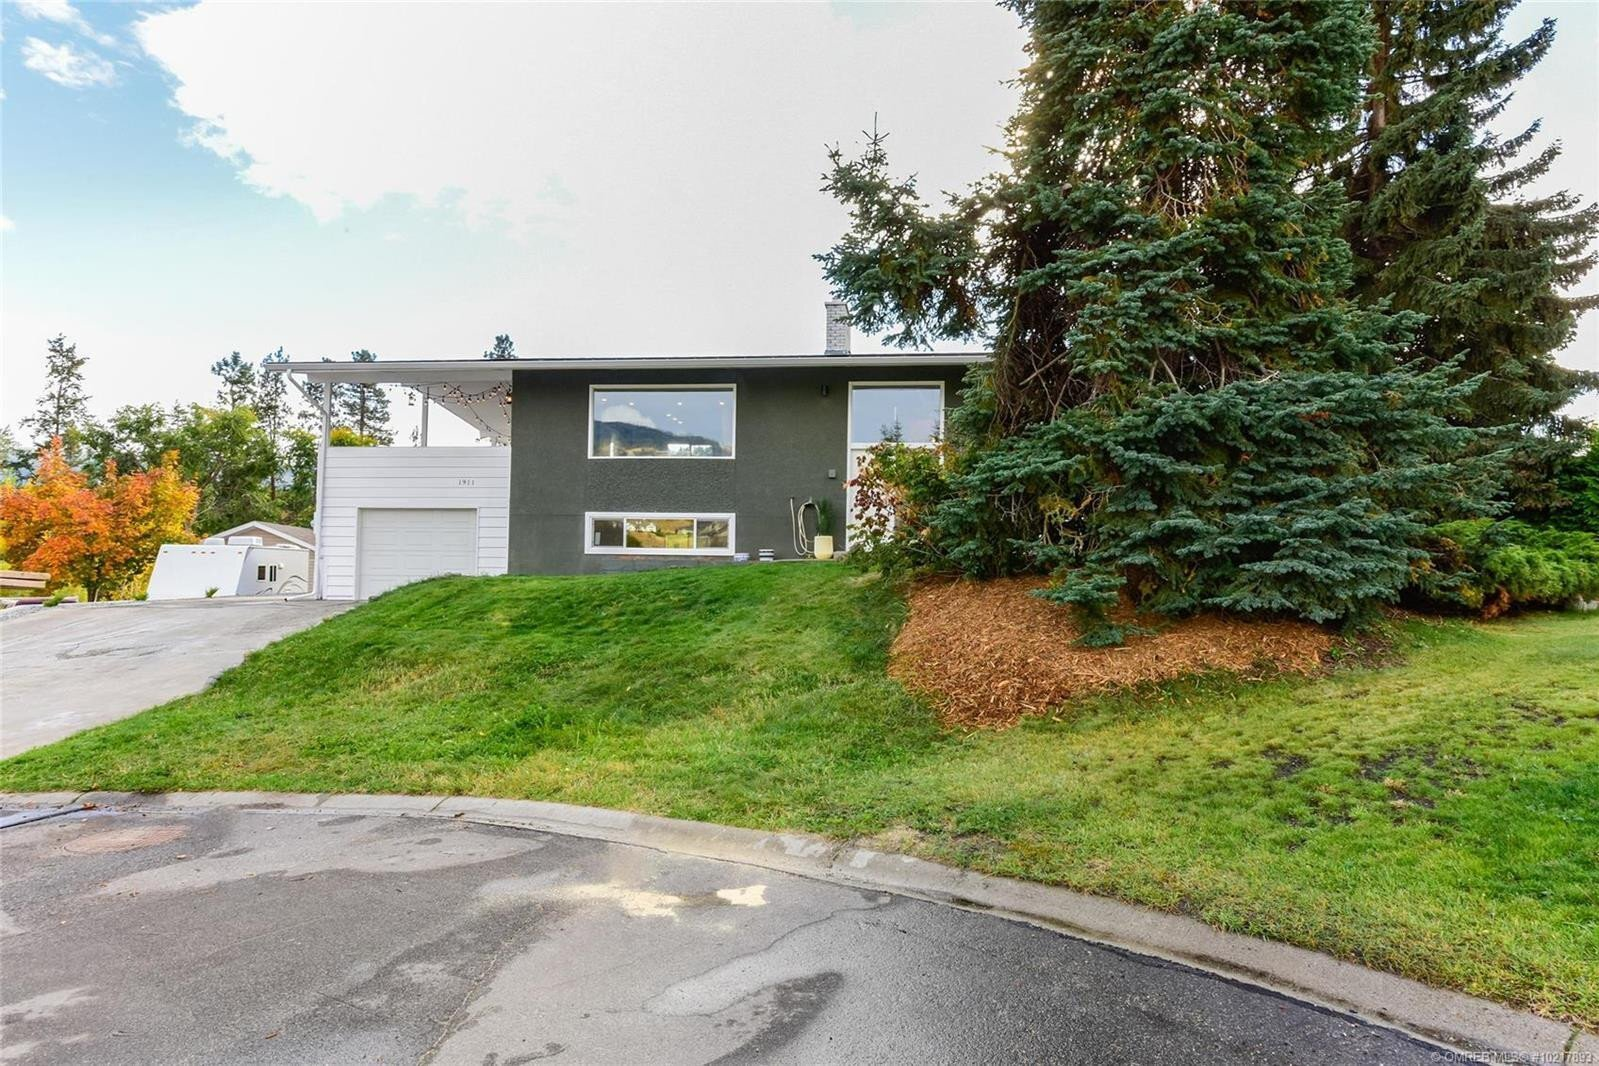 House for sale at 1911 Gallagher Ct Kelowna British Columbia - MLS: 10217893